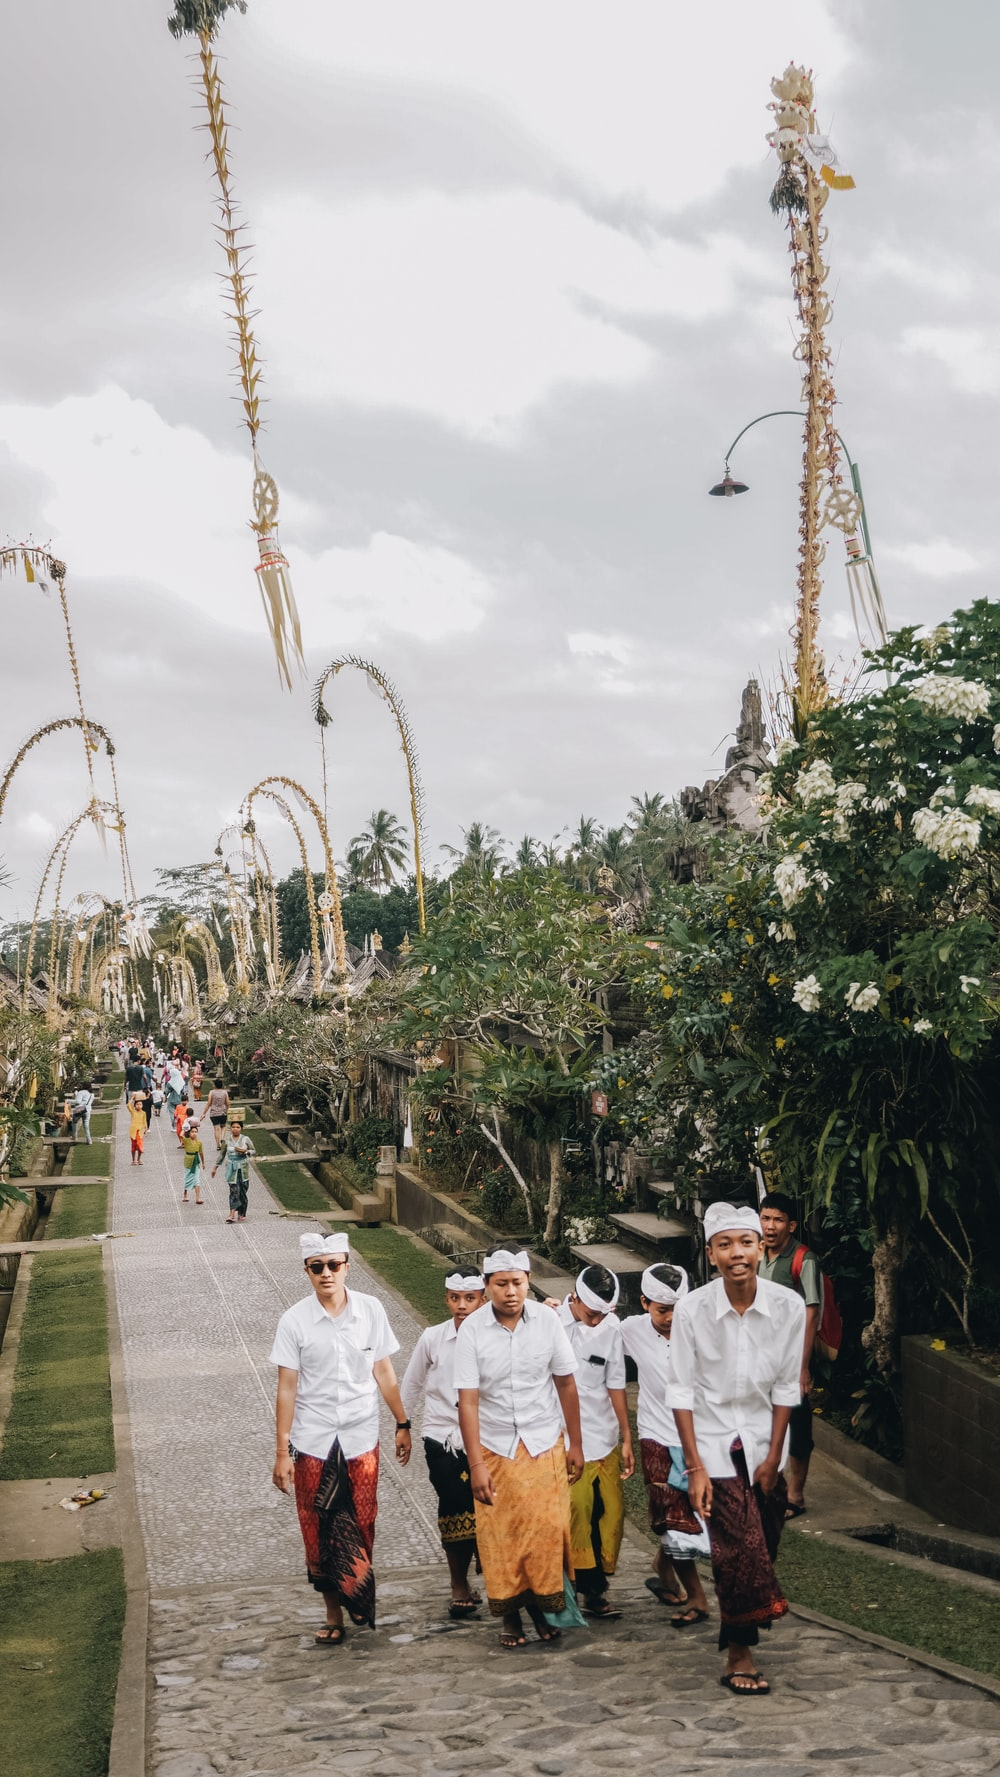 group of men walking at middle of walkway beside flowers